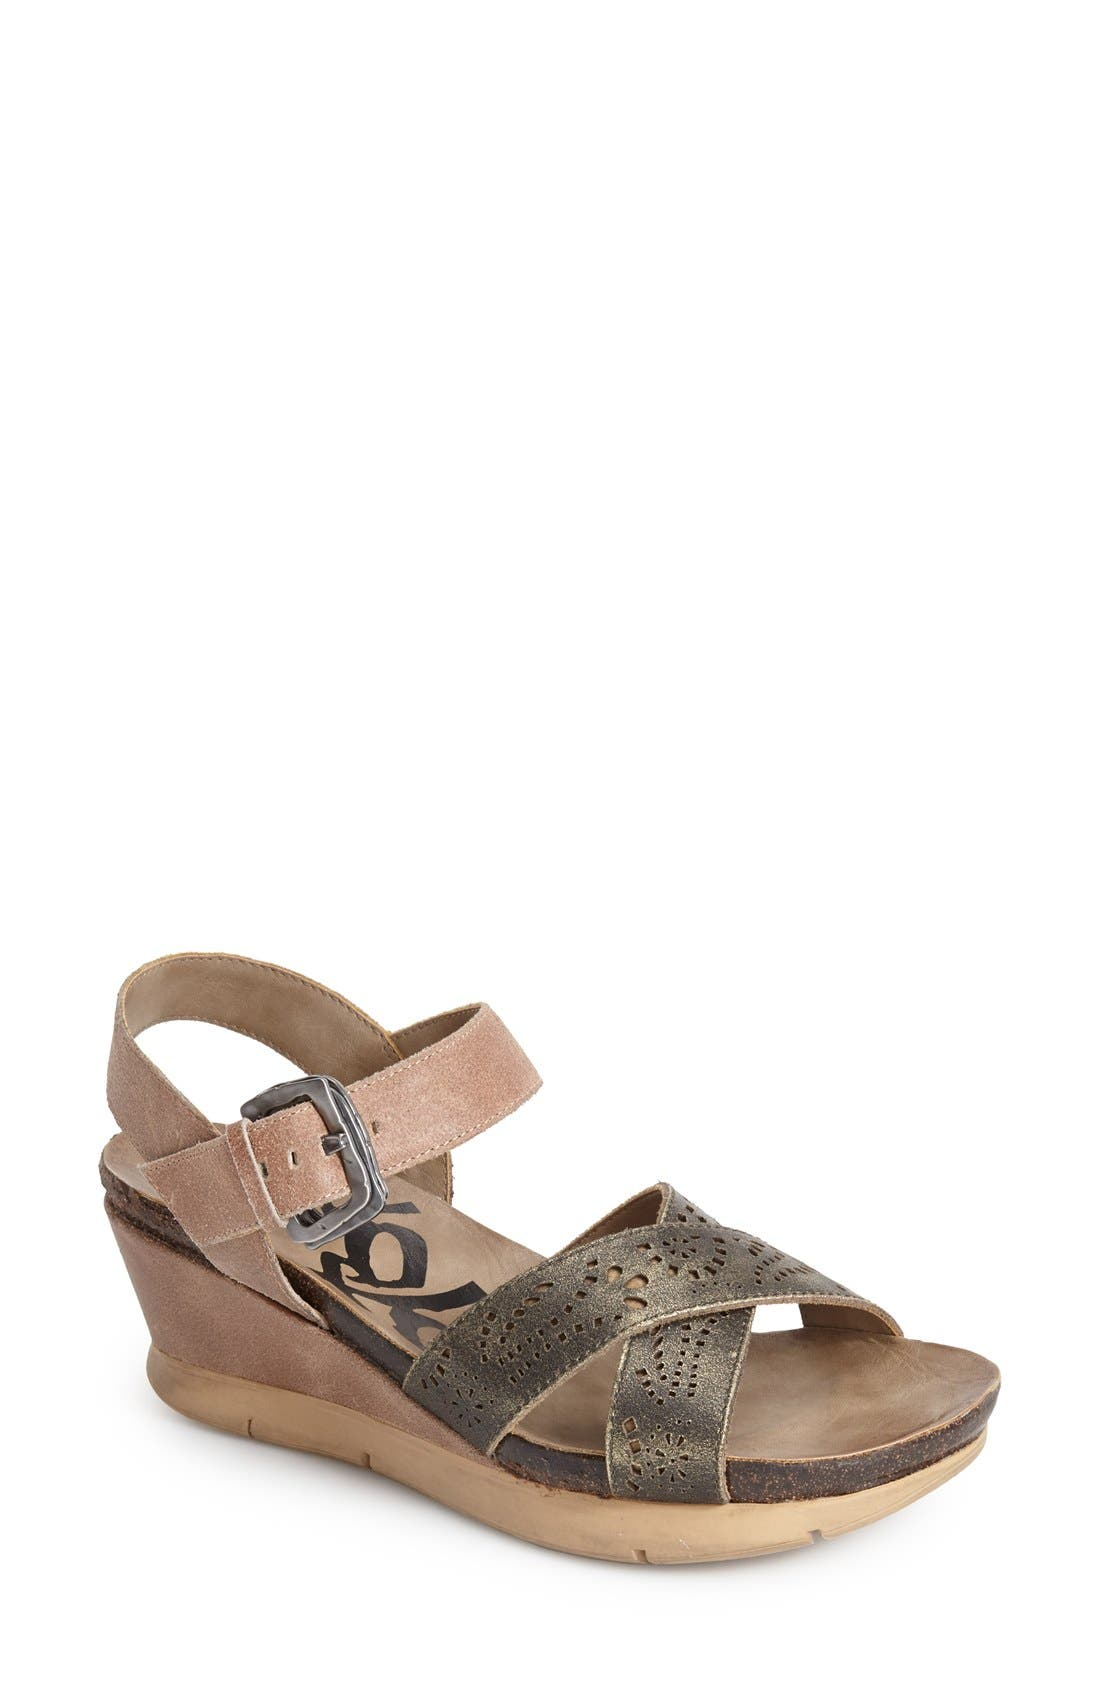 Alternate Image 1 Selected - OTBT 'Gearhart' Sandal